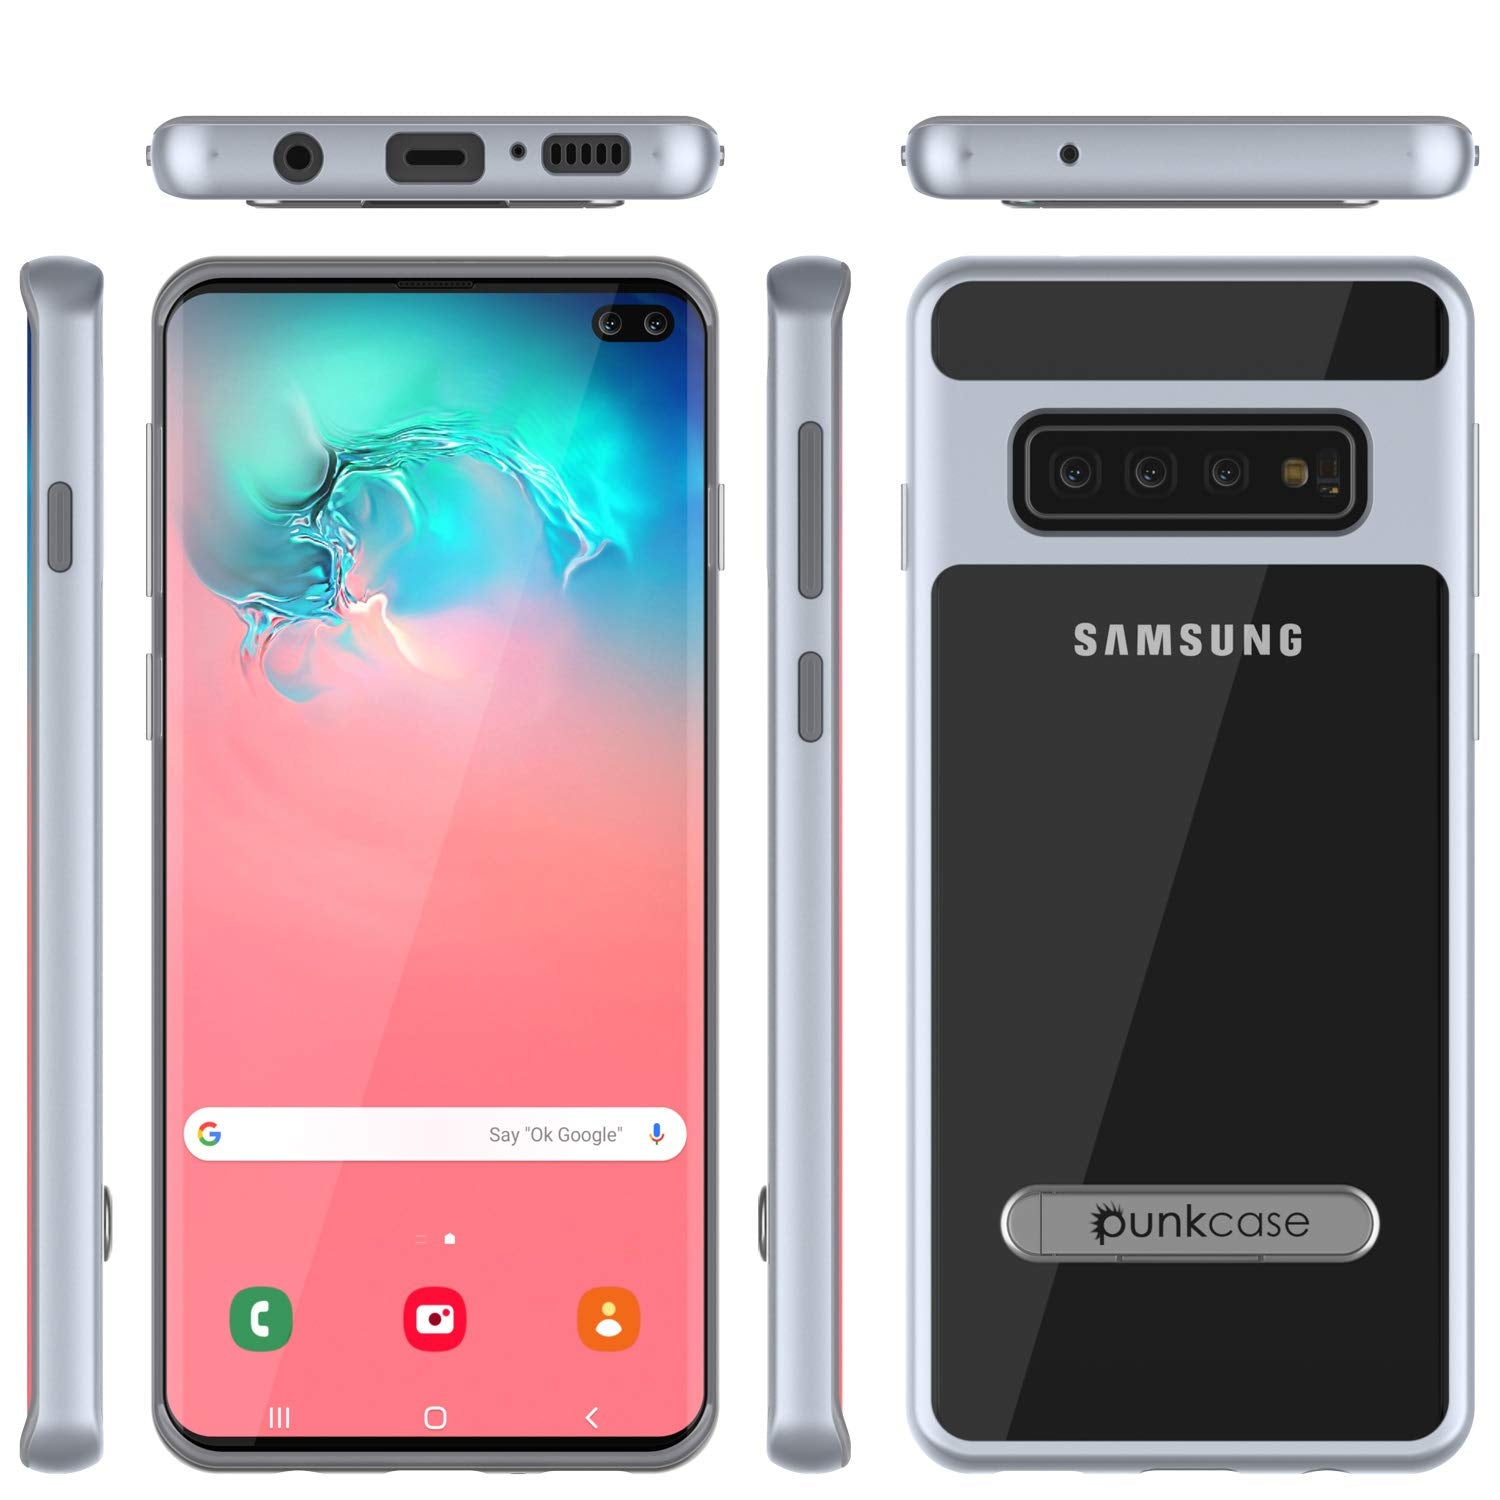 Galaxy S10 Case, PUNKcase [LUCID 3.0 Series] [Slim Fit] Armor Cover w/ Integrated Screen Protector [Silver]